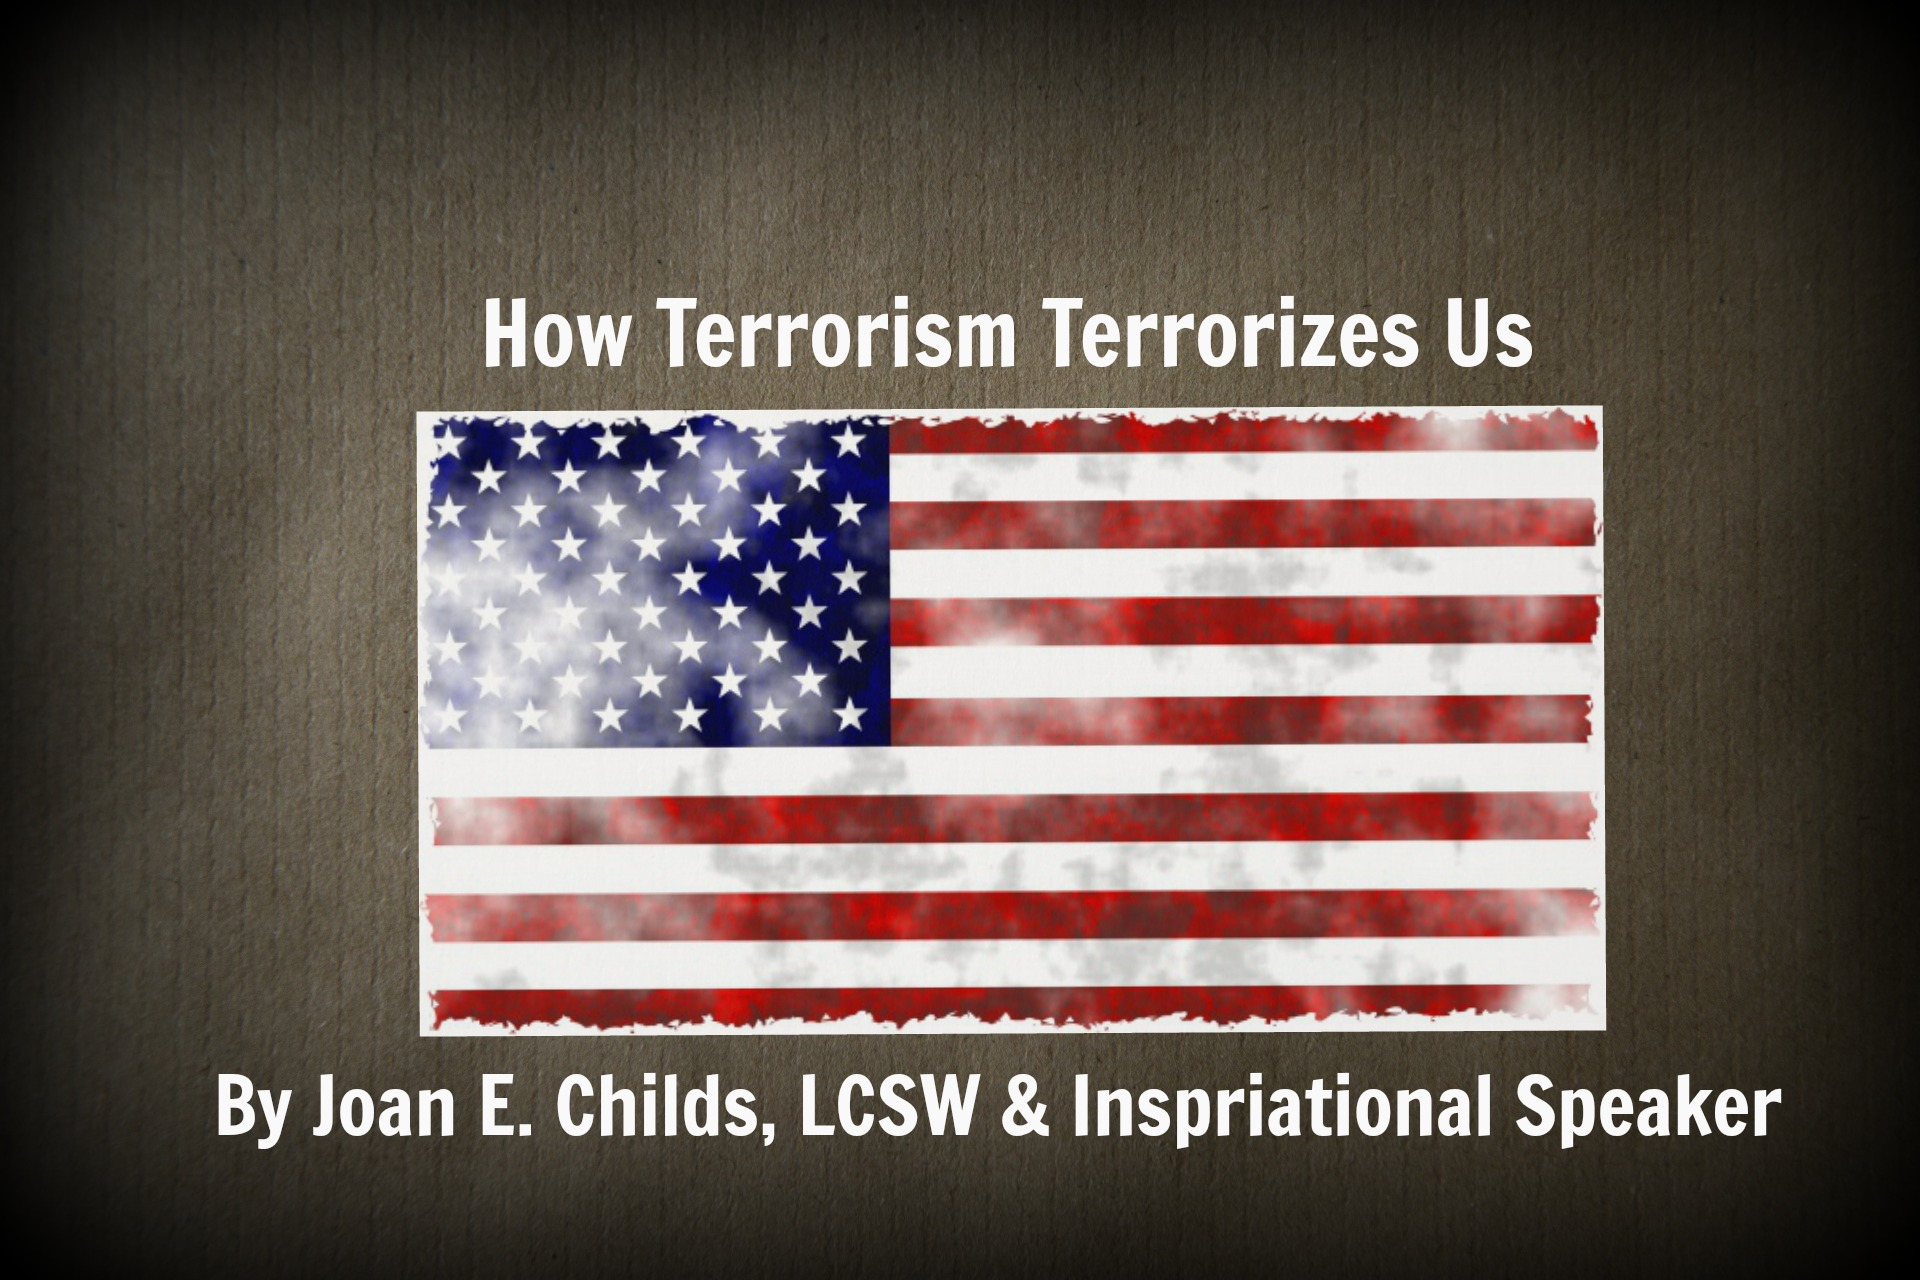 HOW TERRORISM TERRORIZES US by Joan E. Childs, LCSW